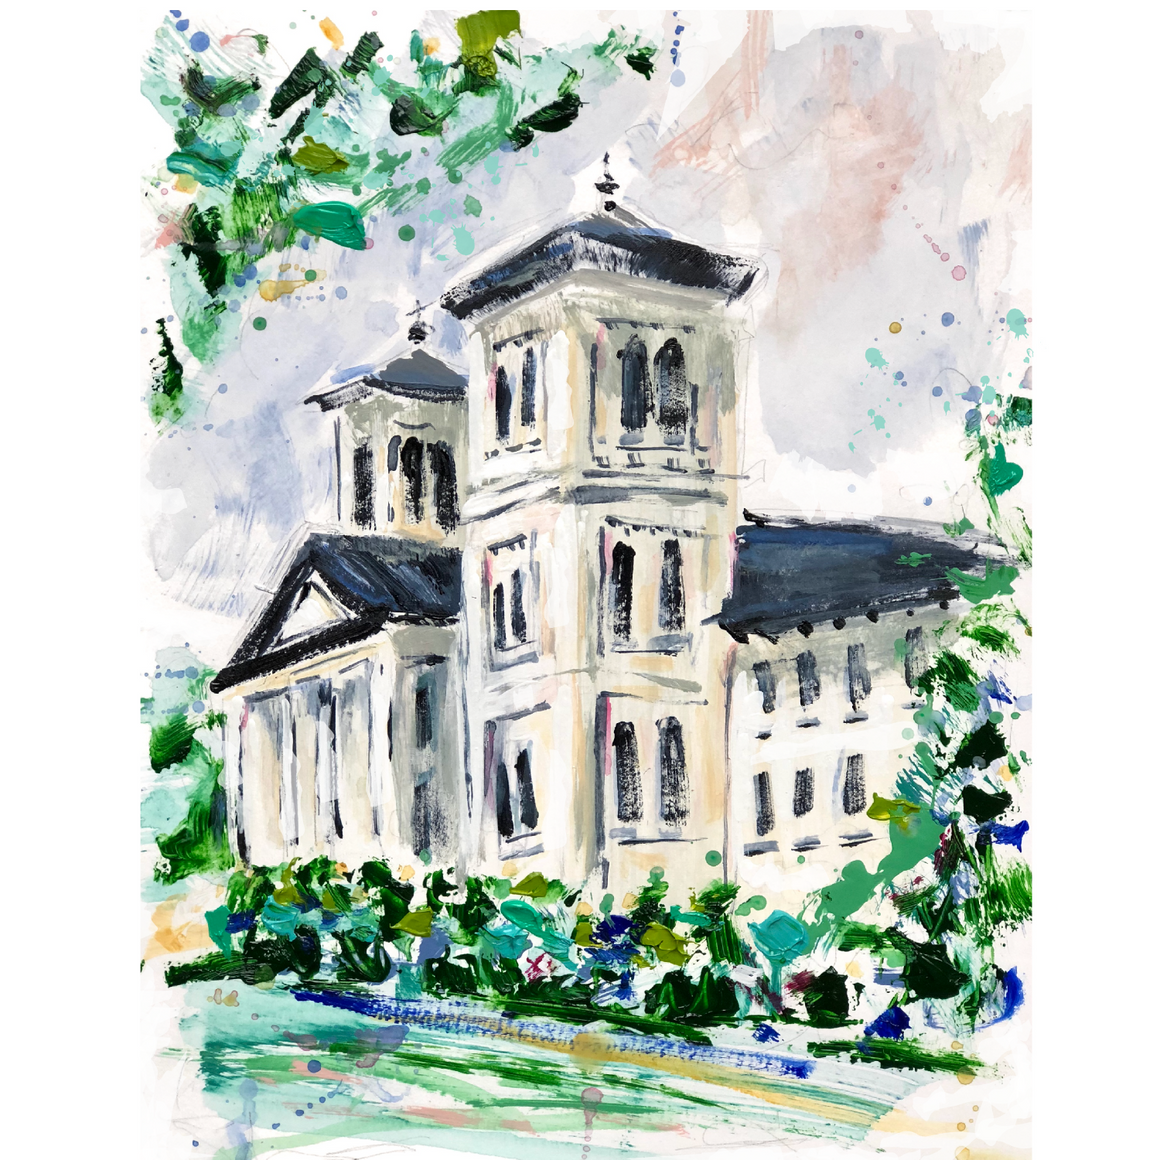 Limited Edition Matted Print - Wofford Main Building